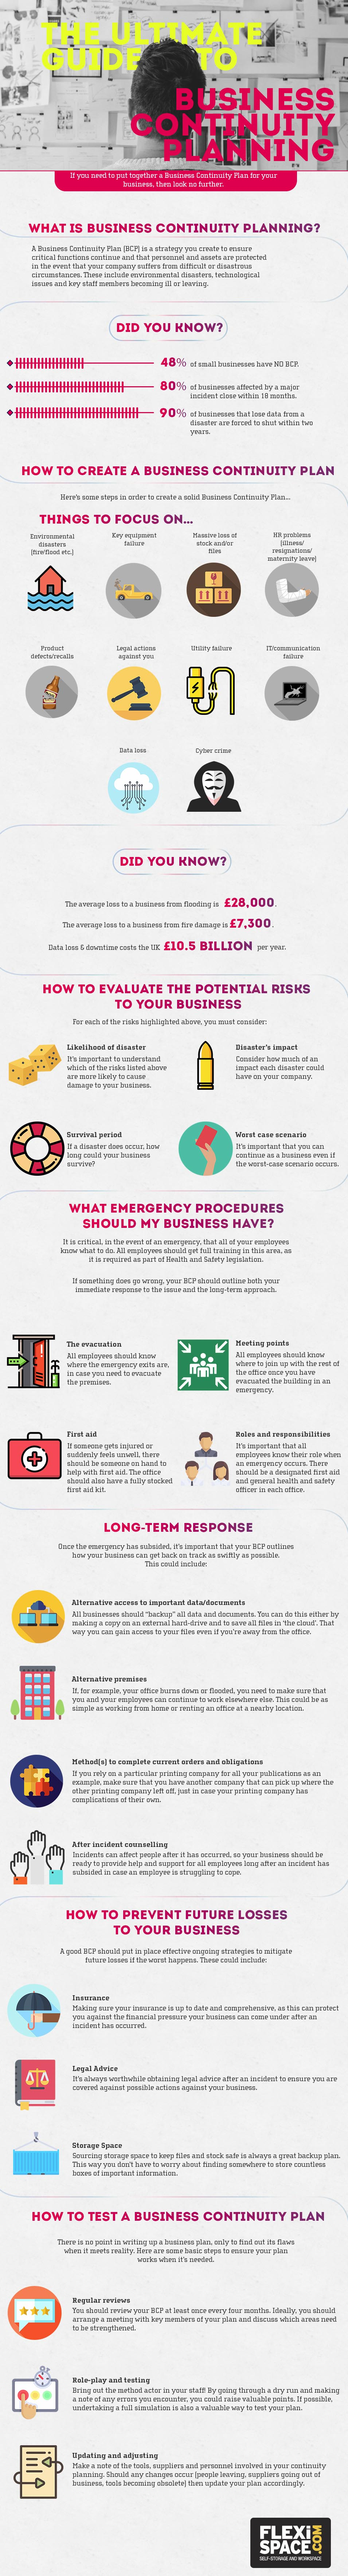 The Ultimate Guide to Business Continuity Planning